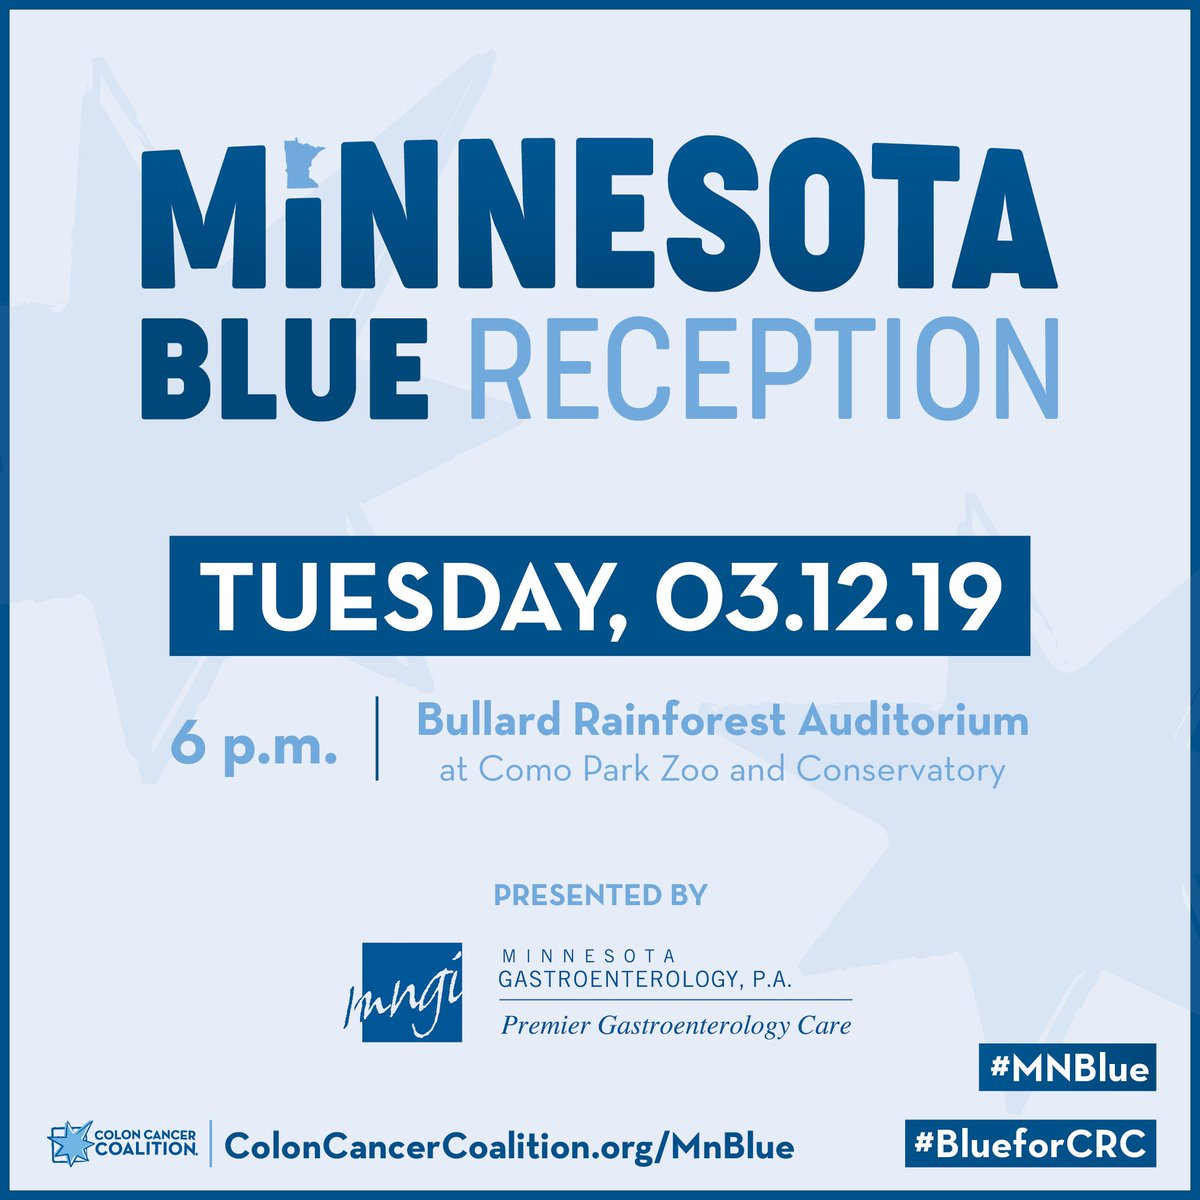 Colon Cancer Coalition Sur Twitter Thank You To Mn Gastro For Being The Presenting Sponsor Of Our Minnesota Blue Reception On March 12 Survivors Caregivers And Partners Across The State Are Invited